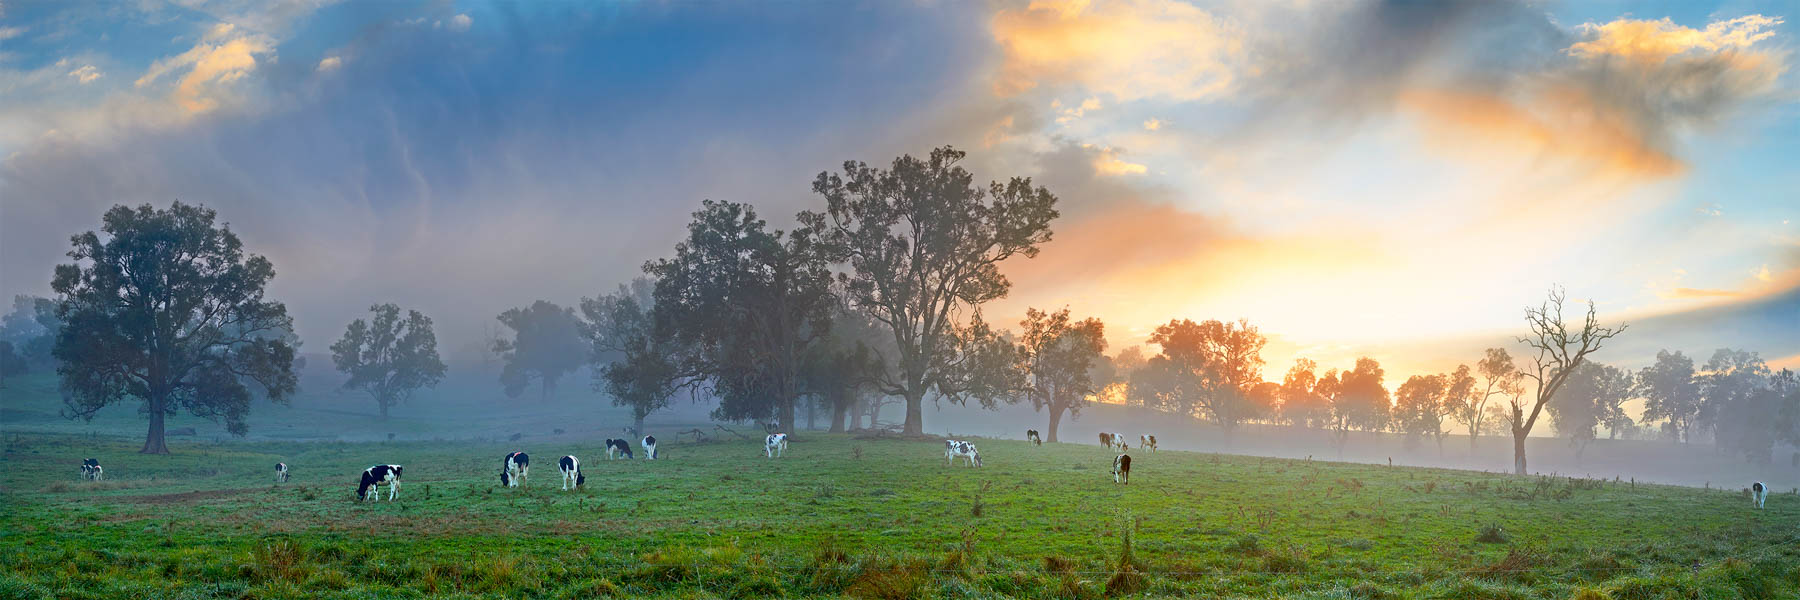 A golden sunrise breaking through the clouds and mist over cattle grazing in Bega, NSW, Australia.